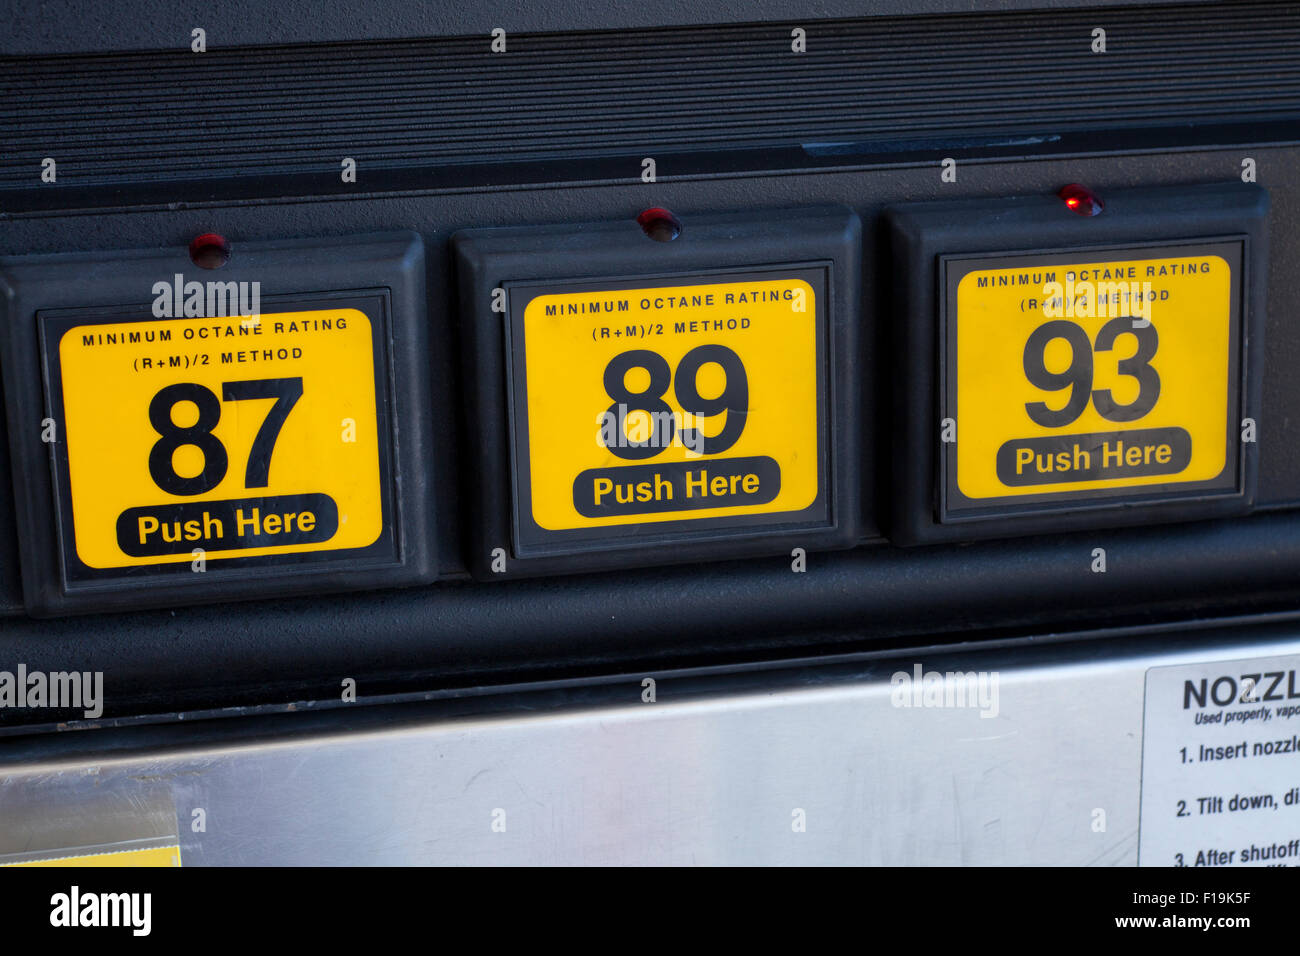 Octane choice buttons on gasoline fill pump - USA - Stock Image